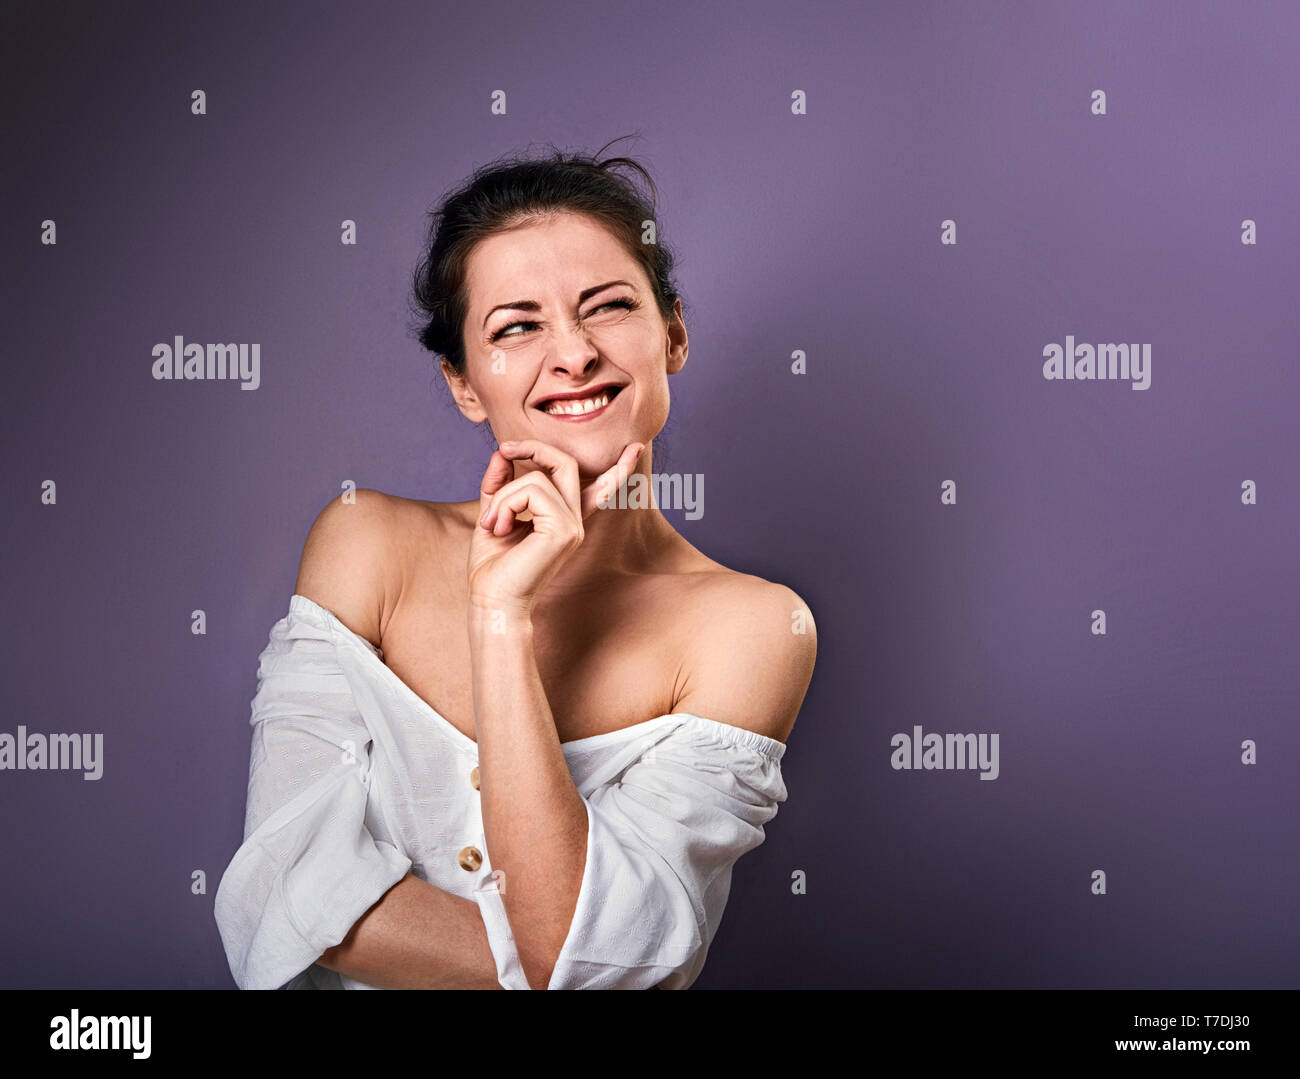 Beautiful positive grimacing fun woman with hand under the face thinking and looking up in white shirt on purple background with empty copy space. - Stock Image